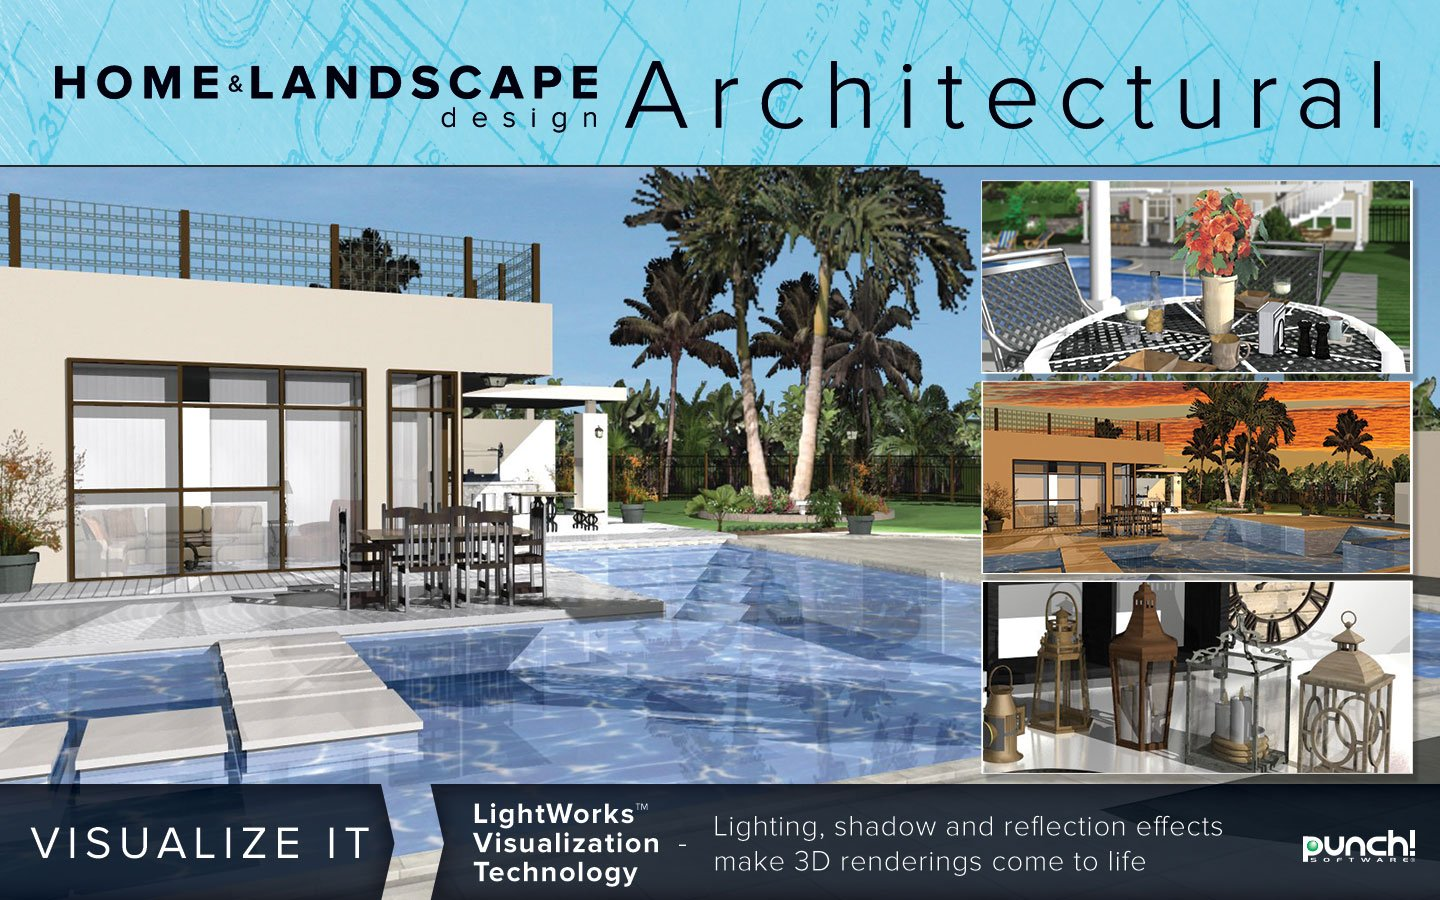 Punch home landscape design architectural series v18 Punch home and landscape design professional